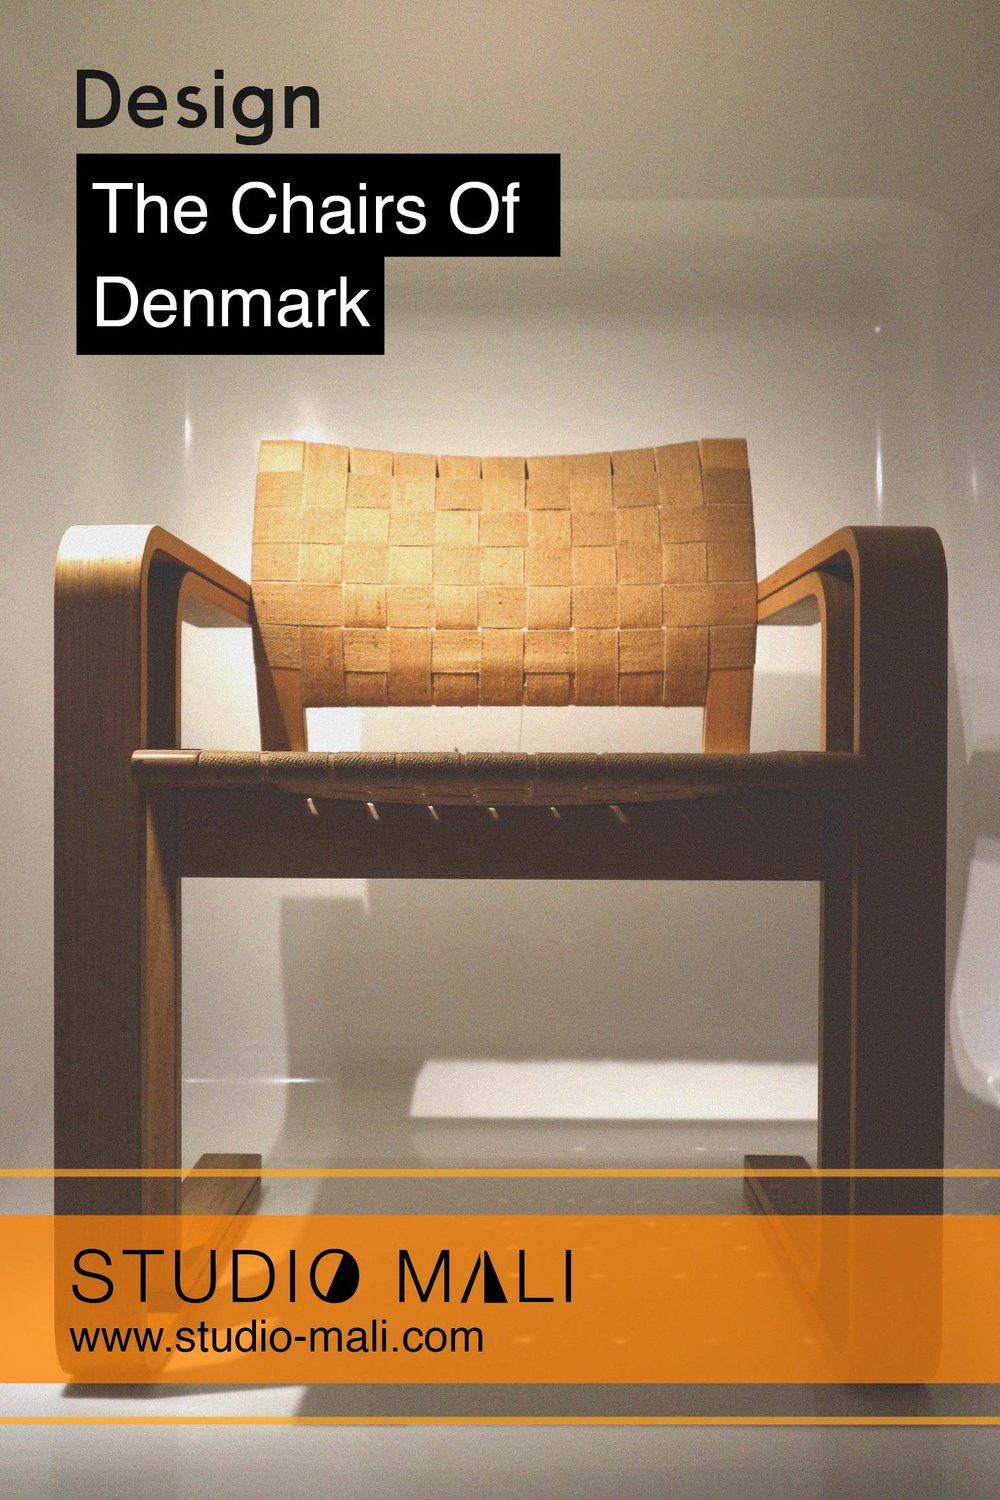 The Chairs Of Denmark, by Studio Mali.jpg